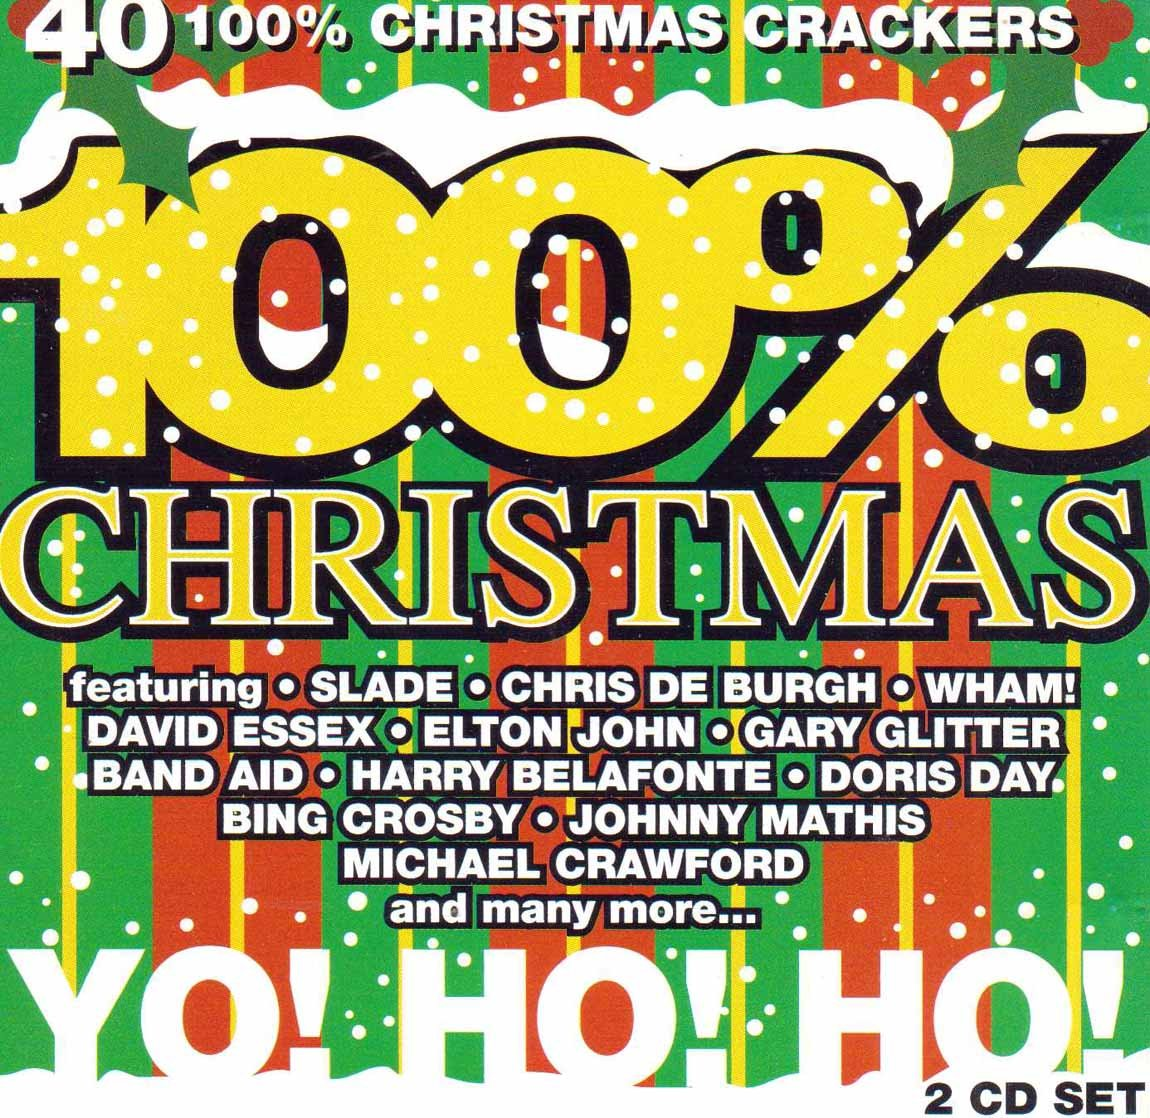 100% Christmas [2 CD Set ~ 40 track 100% Christmas Crackers] by Telstar